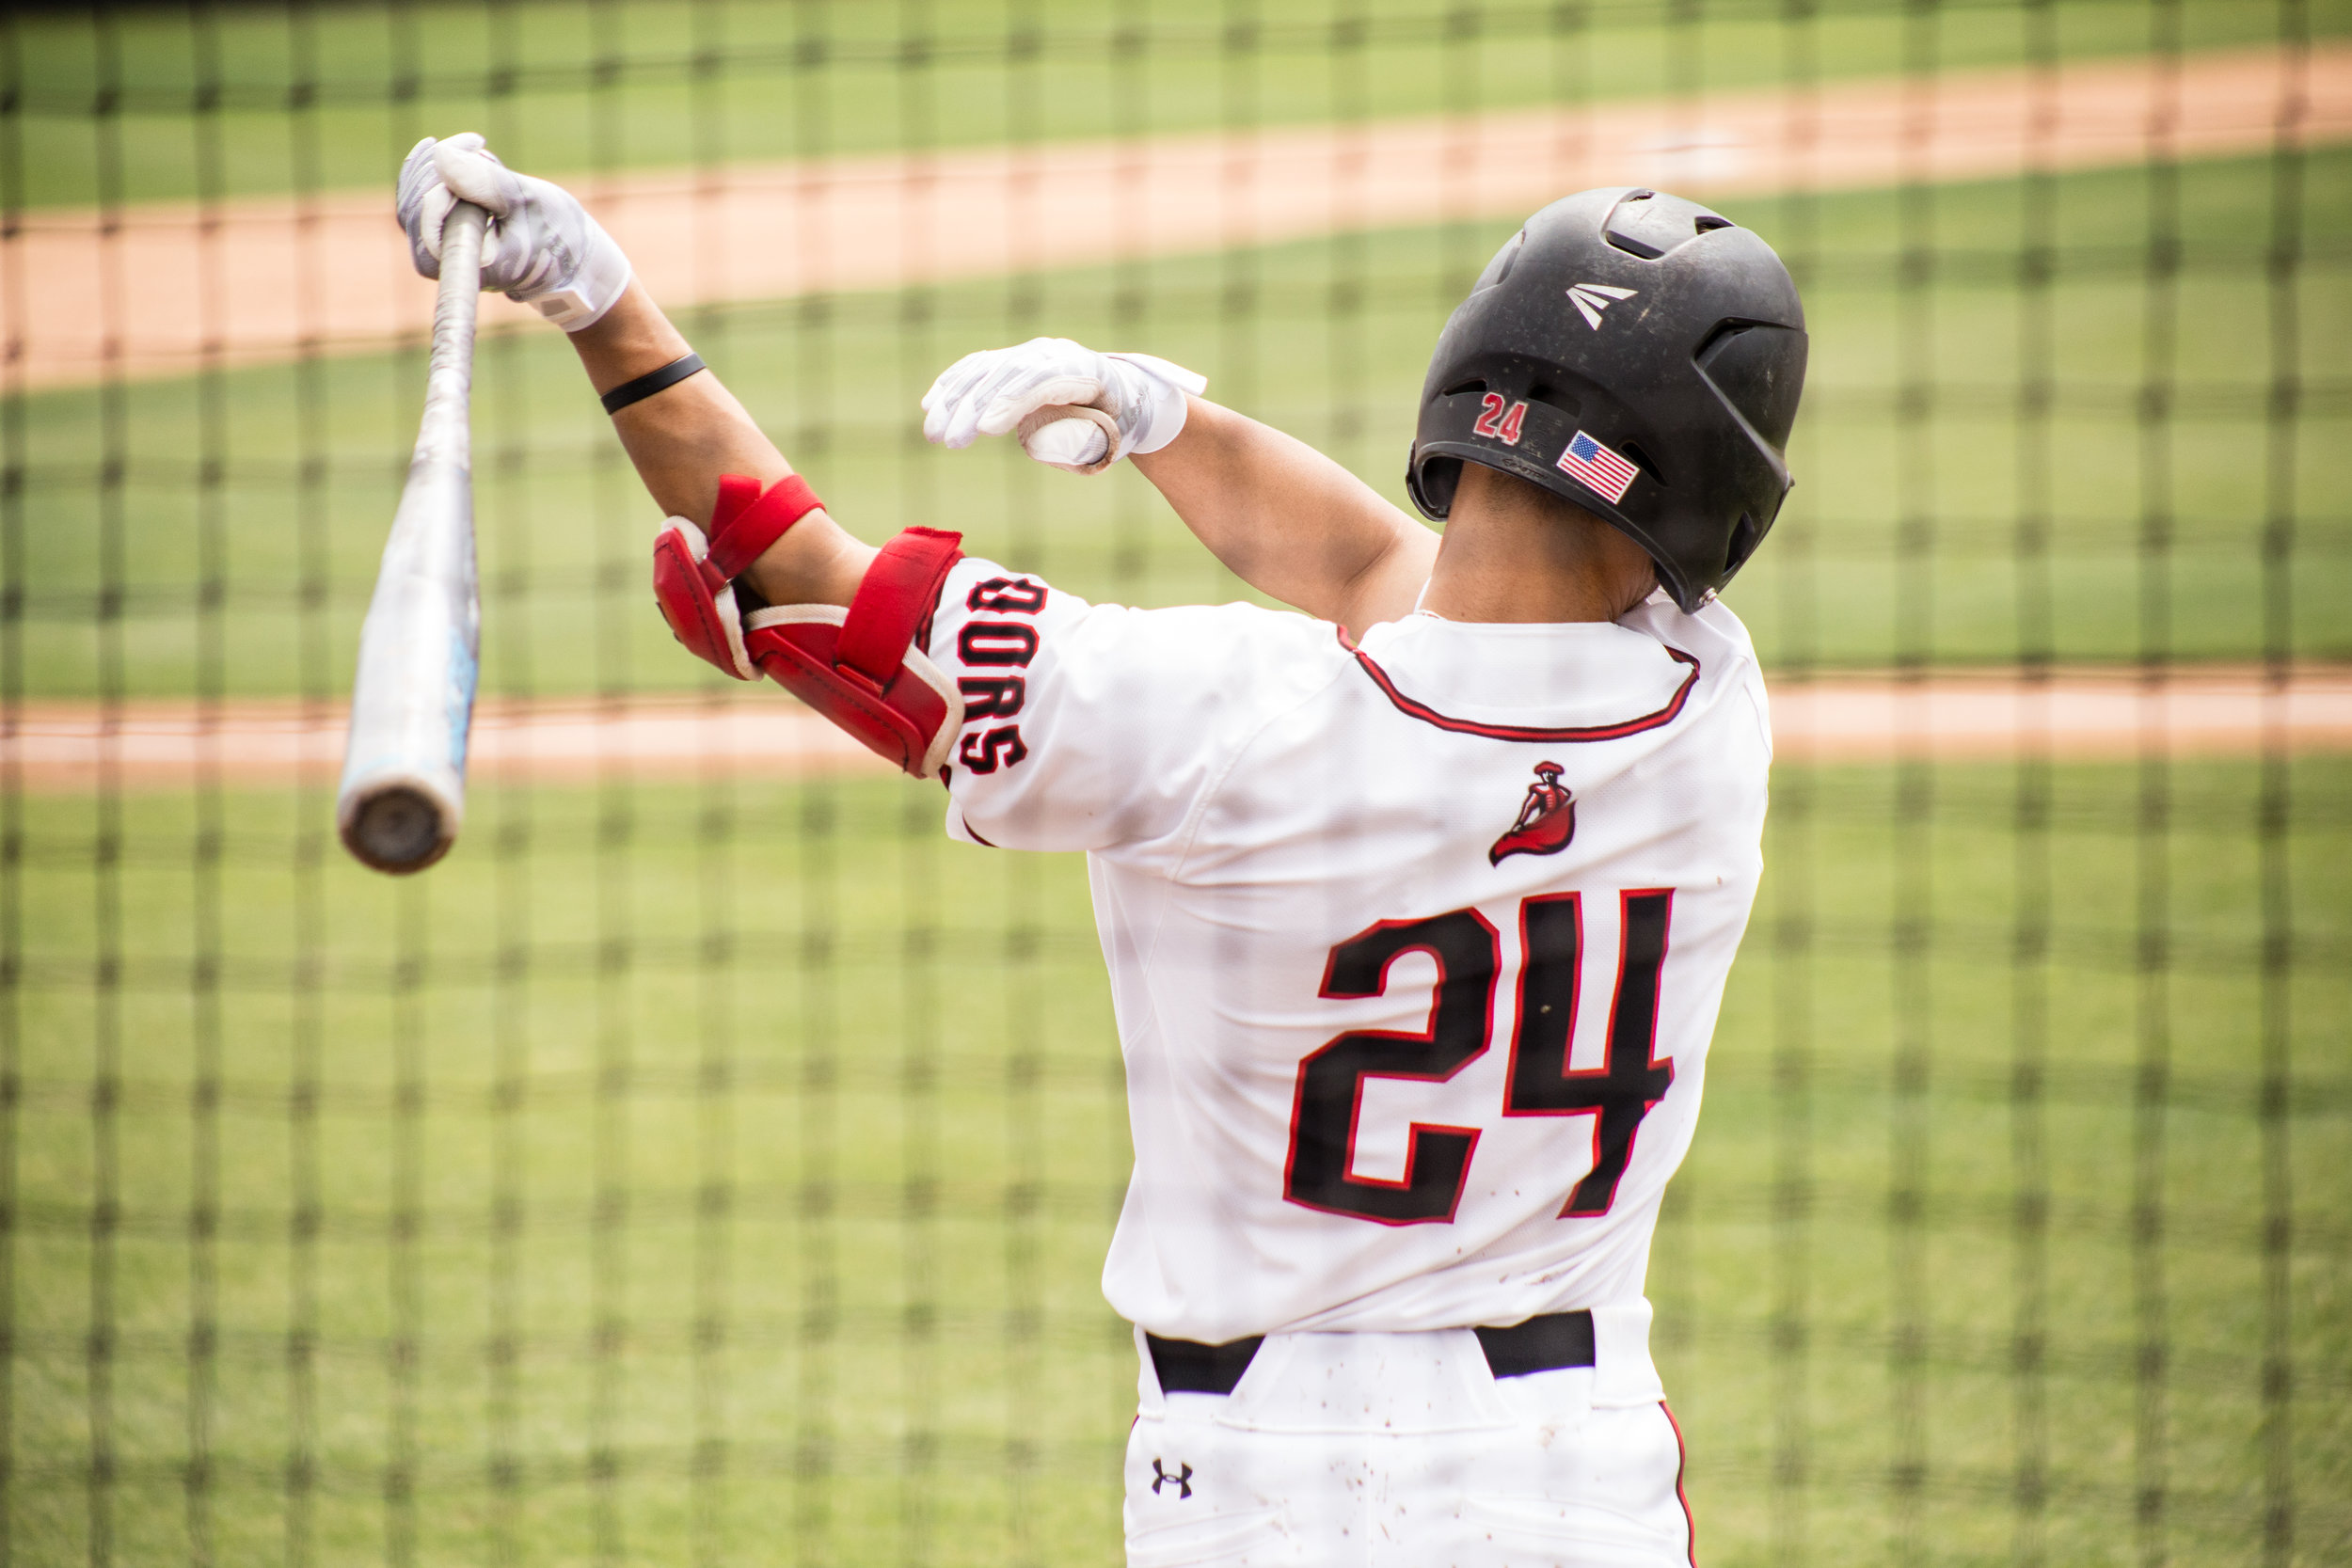 2018_03_11 - Baseball vs Pepperdine (max reso)-1.jpg